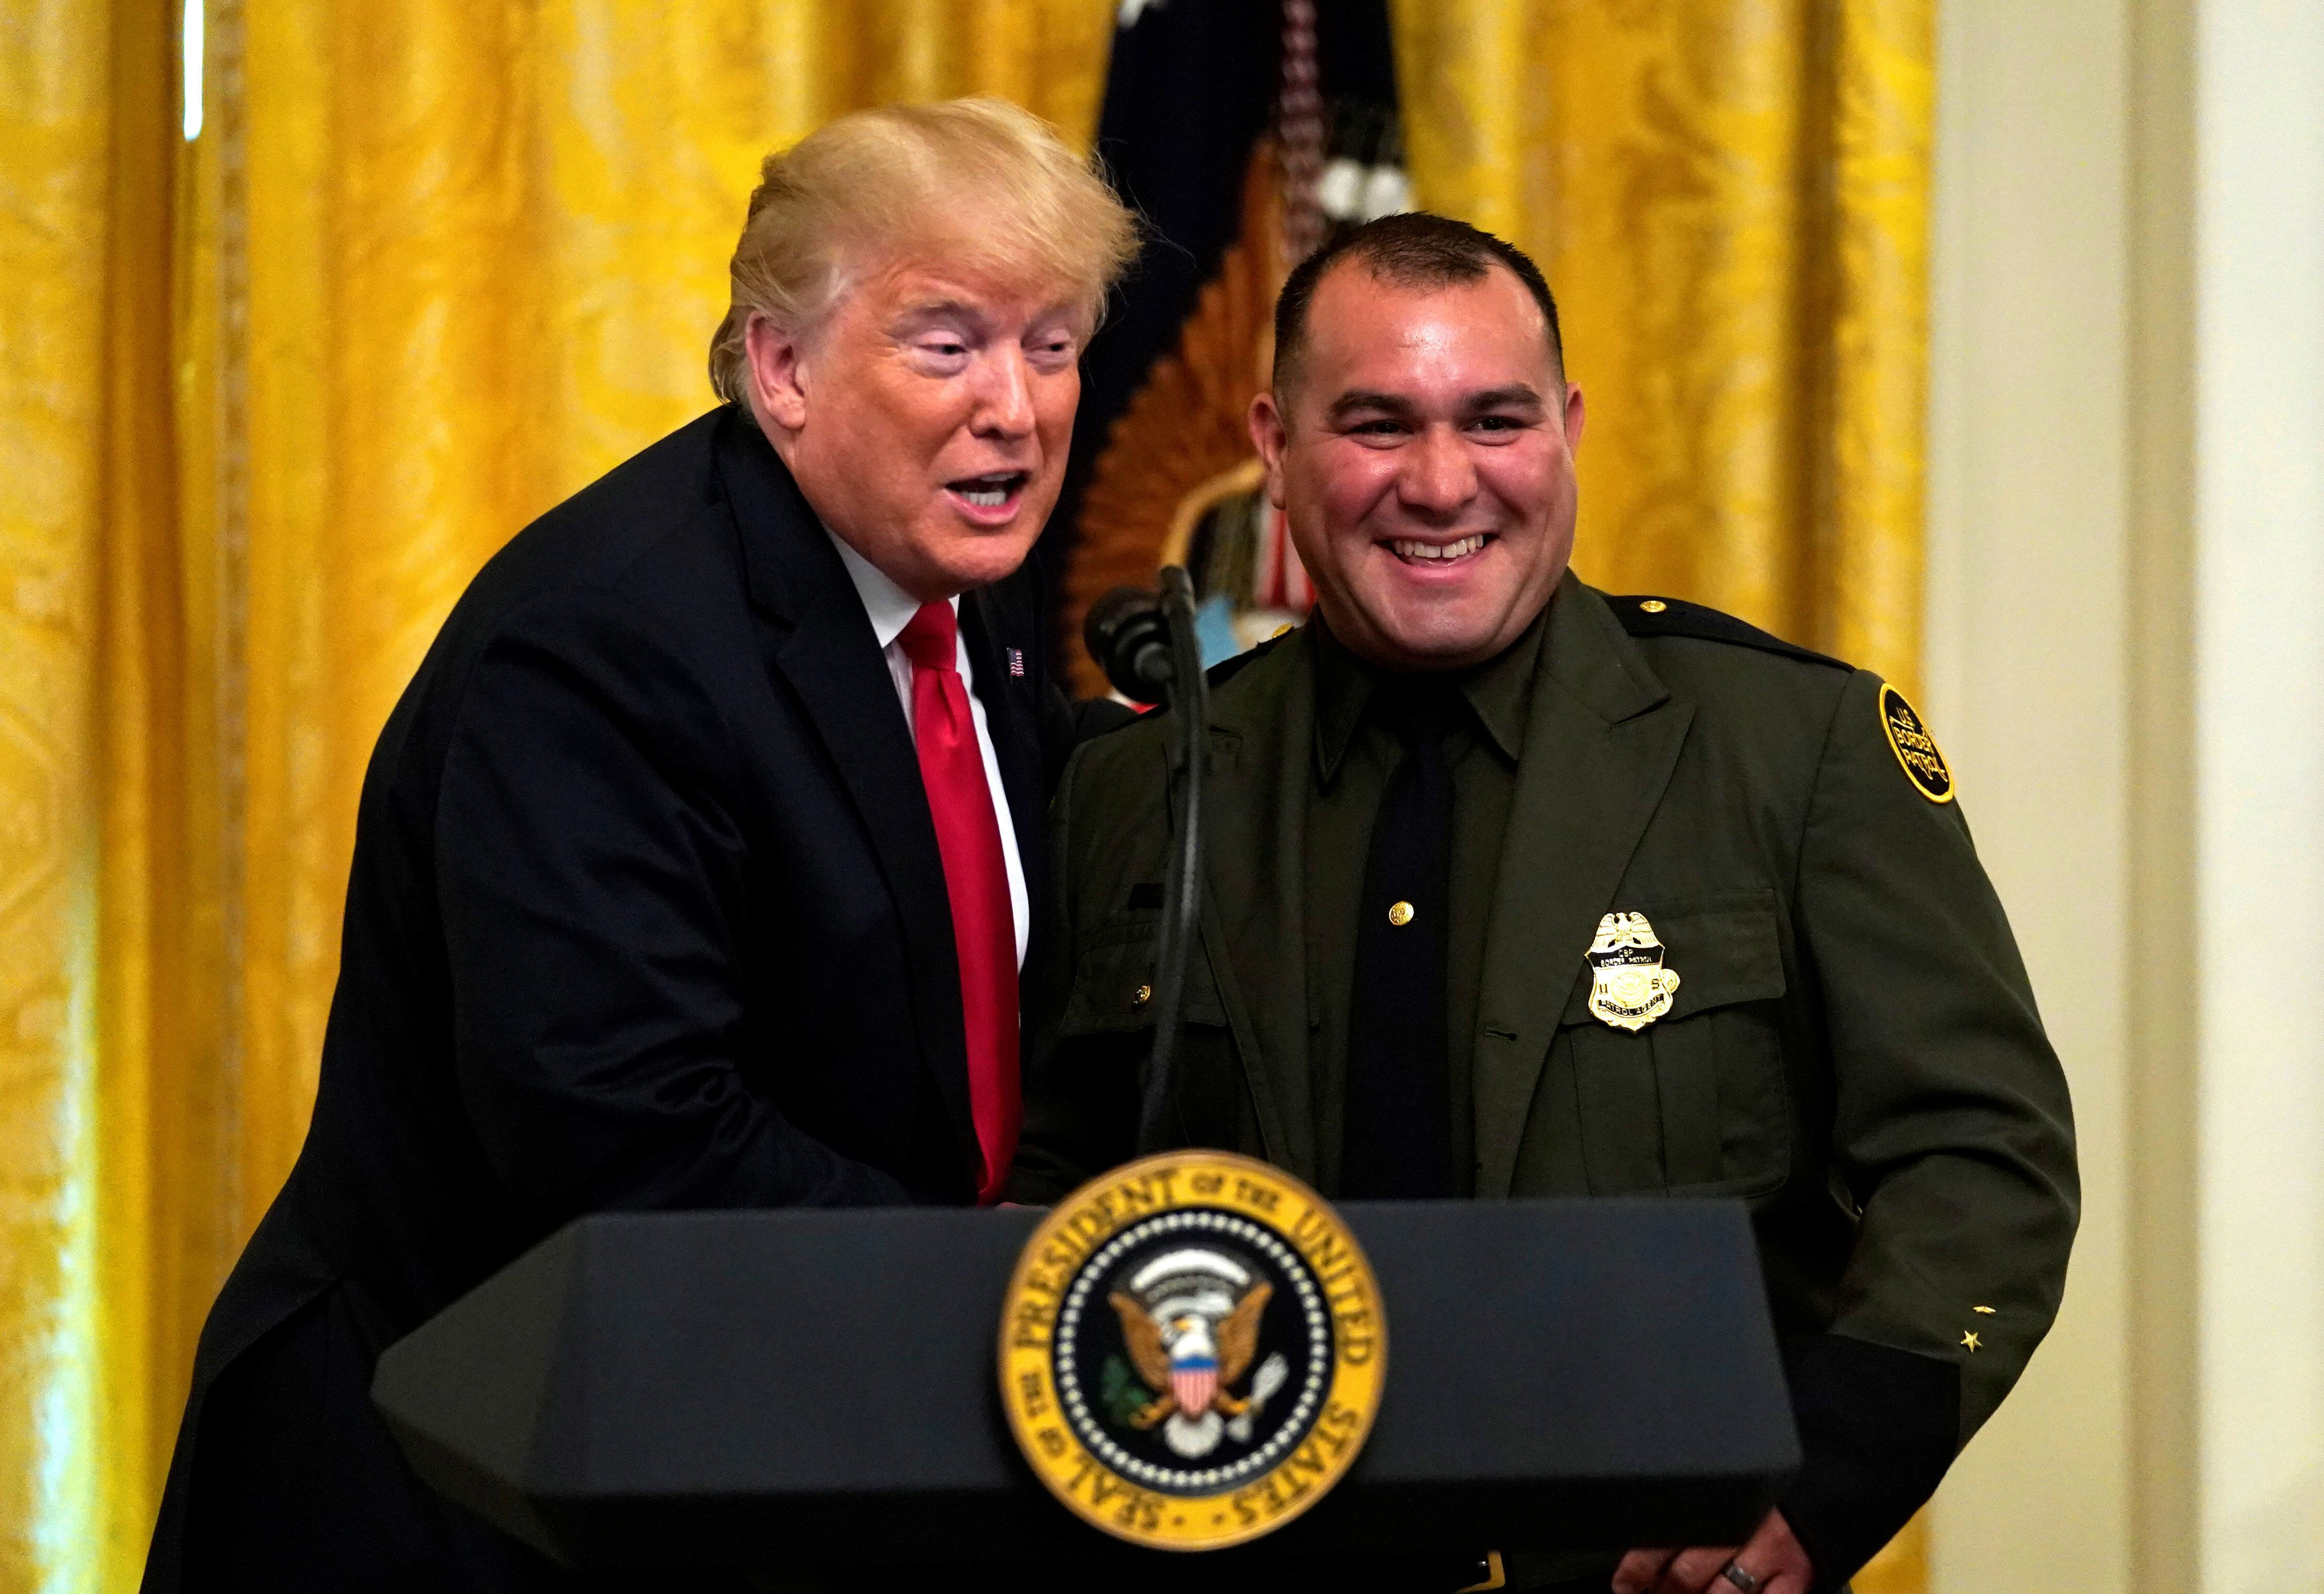 U.S. President Donald Trump brings up Border Patrol agent Adrian Anzaldua to speak  during a Salute to the Heroes event at the White House in Washington, U.S., August 20, 2018.  REUTERS/Kevin Lamarque